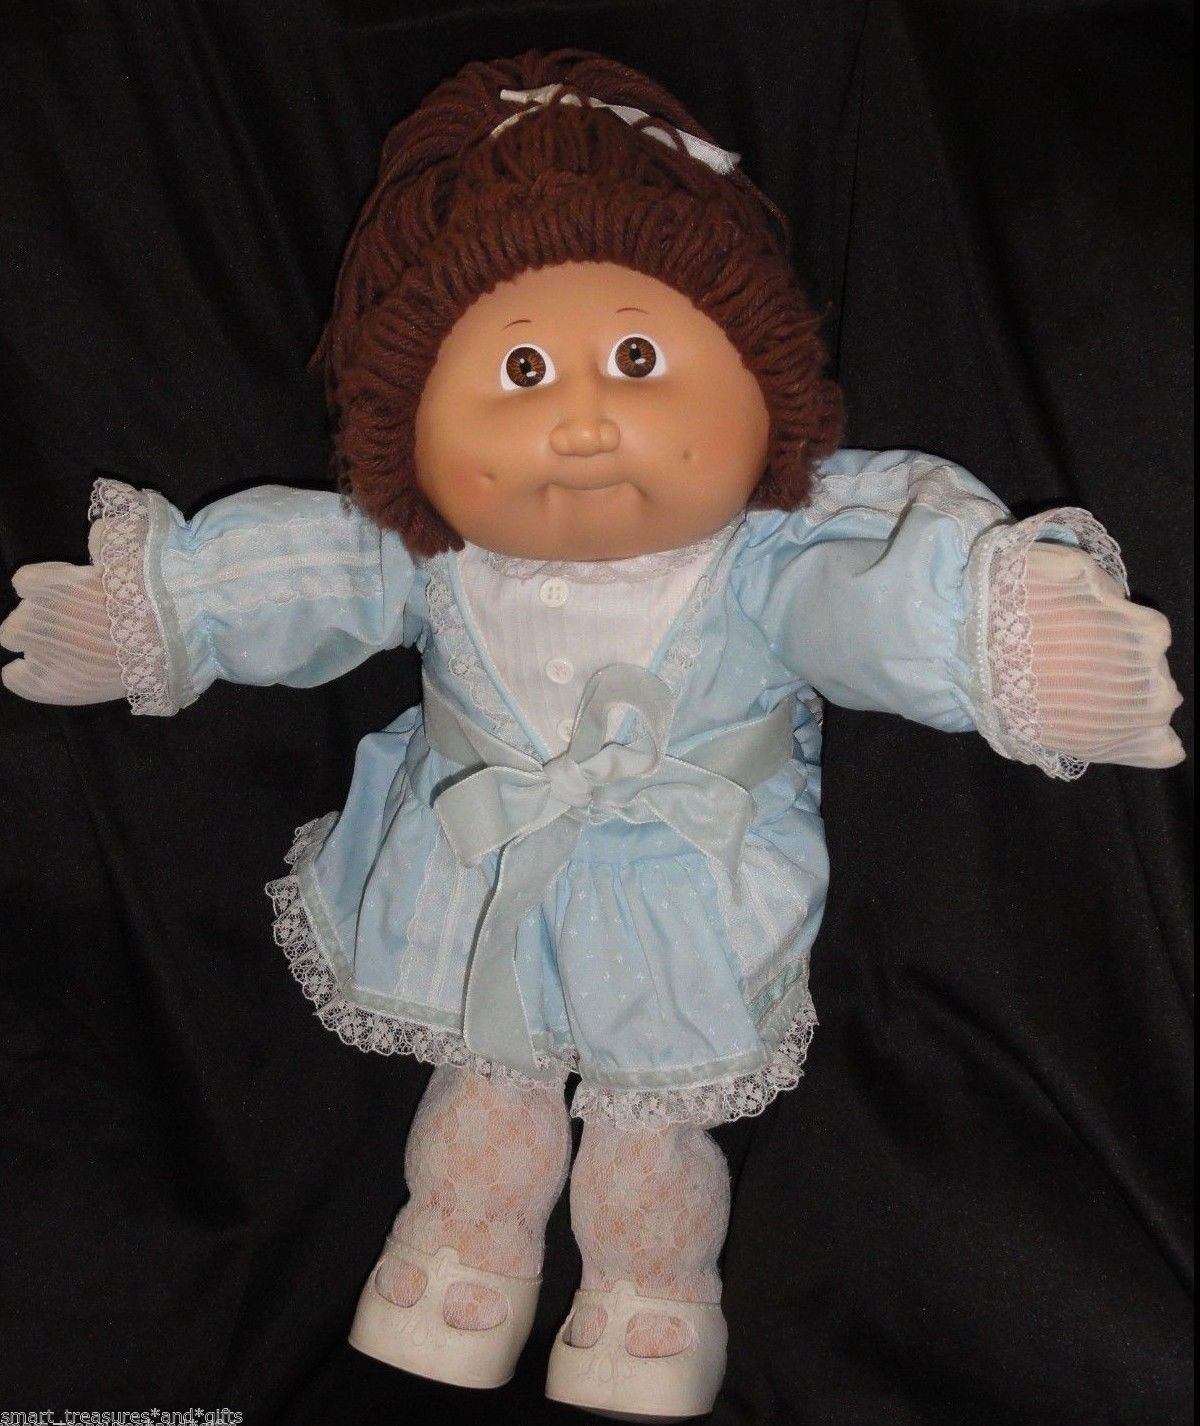 Cabbage Patch Kids Doll Coleco 1985 Xavier Roberts Girl Lot Clothes Vtg Rare Htf Cabbage Patch Kids Dolls Cabbage Patch Dolls Cabbage Patch Kids